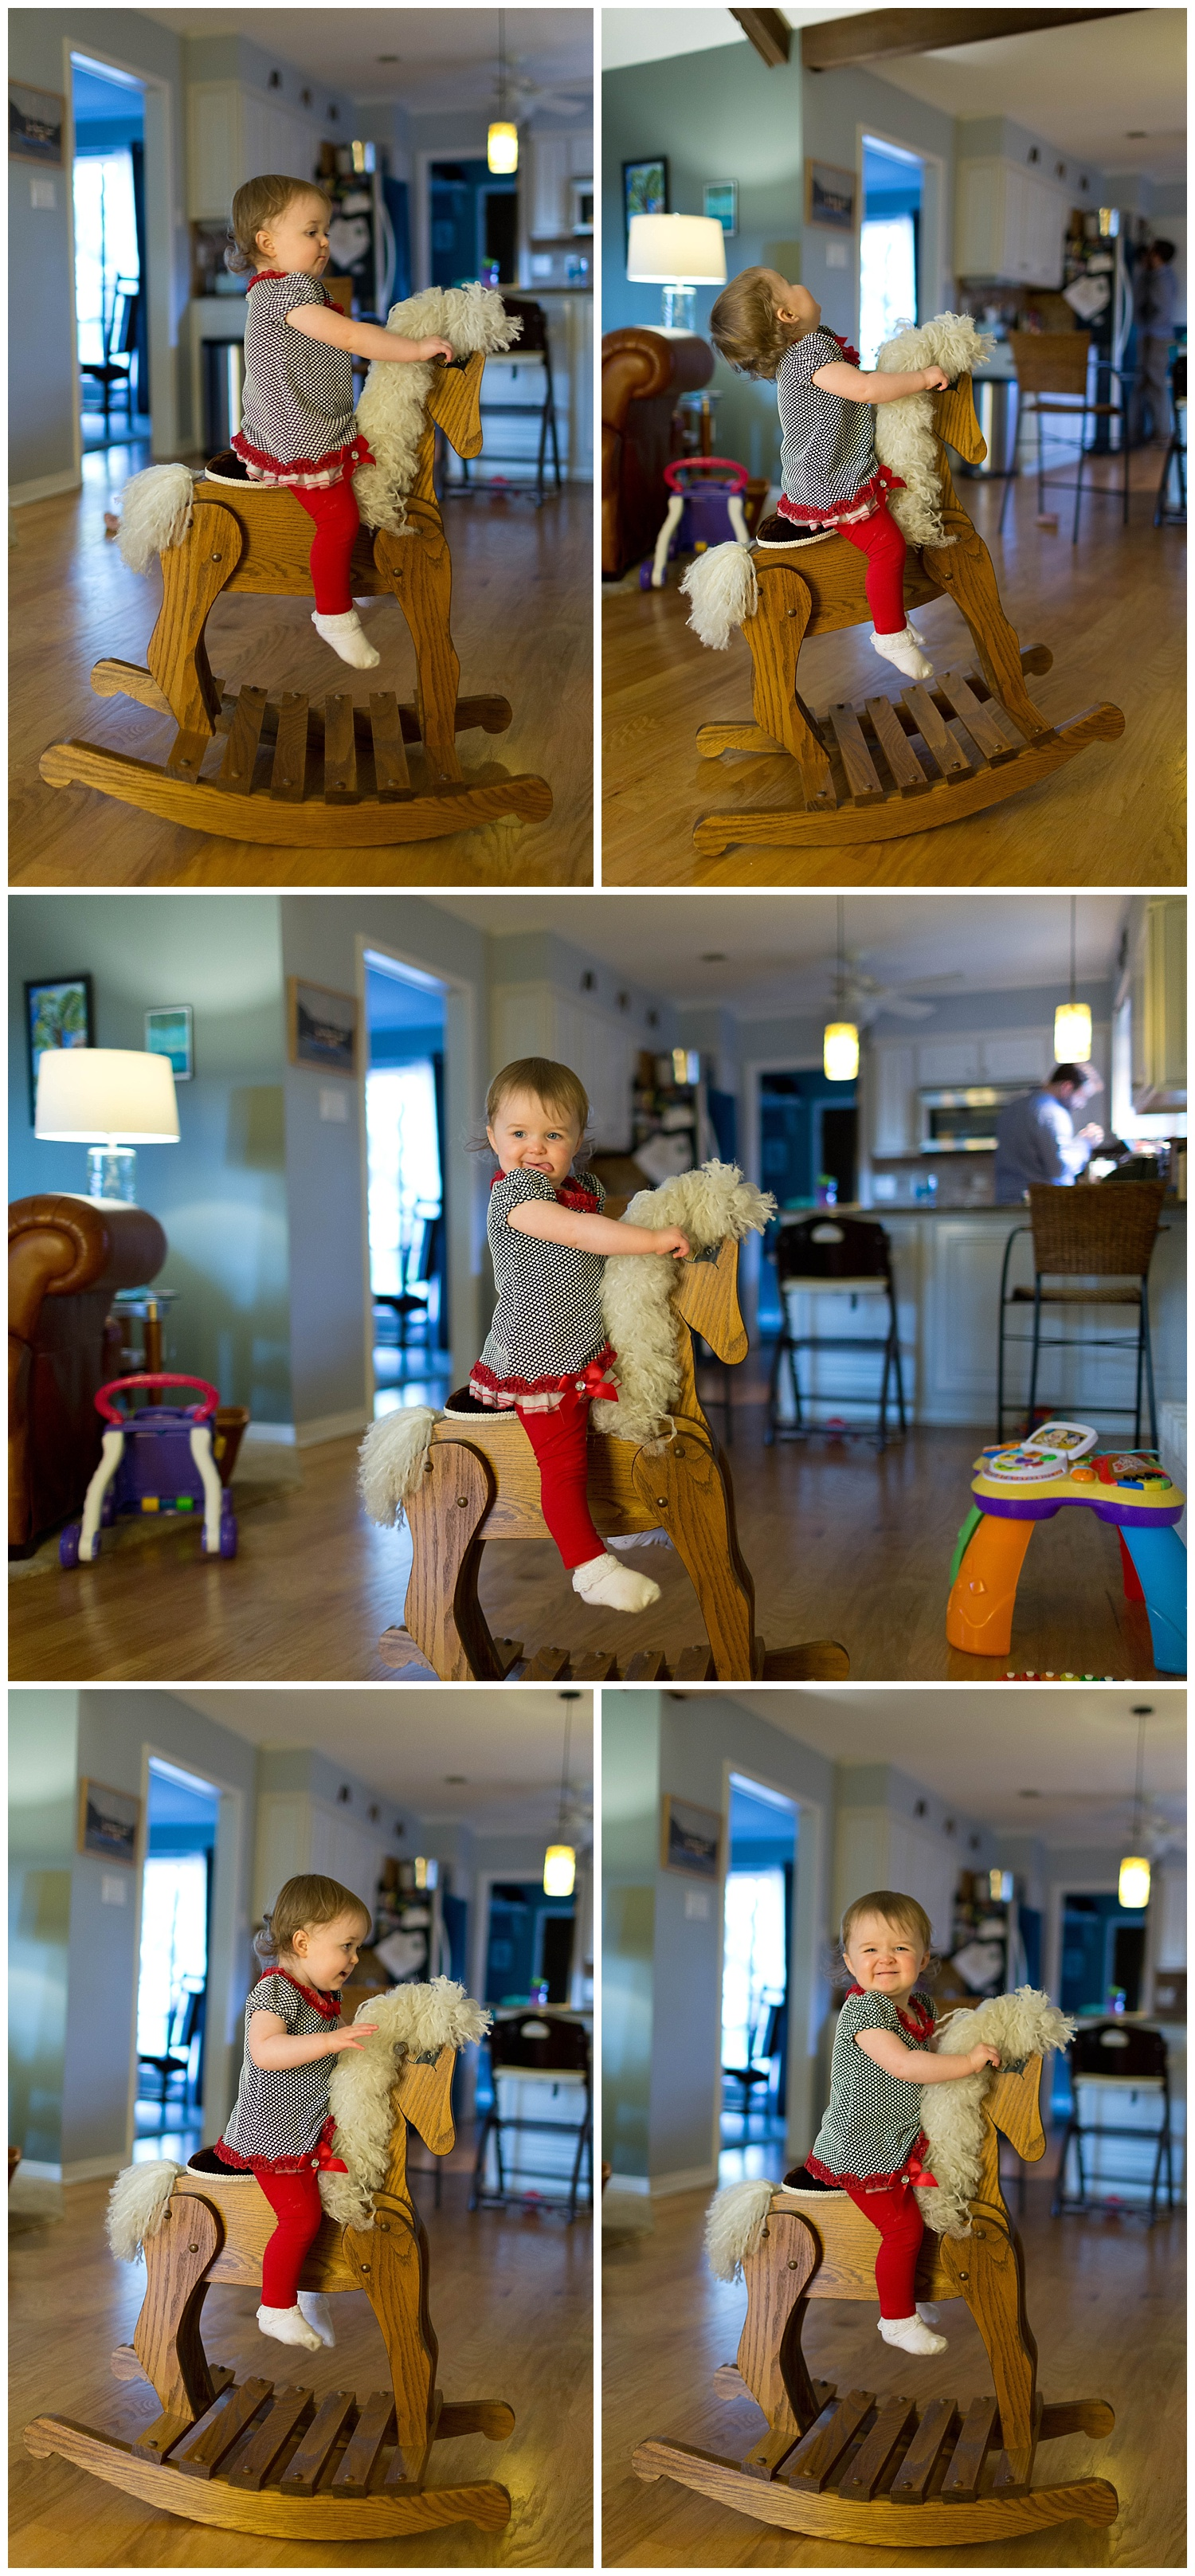 toddler girl playing on handmade wooden rocking horse toy at home (Ocean Springs lifestyle family photographer)